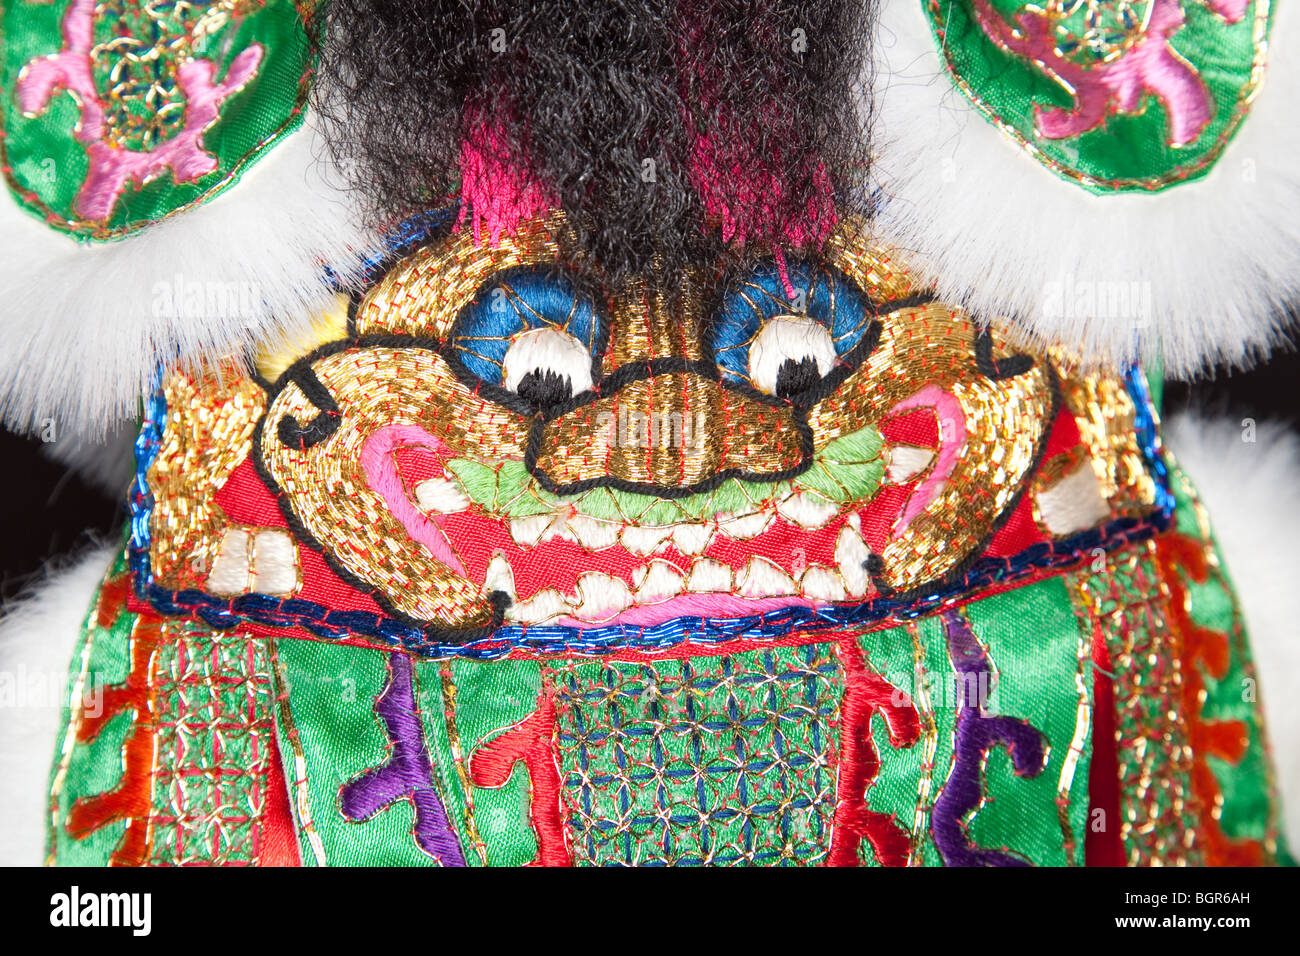 Closeup of a handmade Chinese ornamental robe sporting the face of a lion - Stock Image